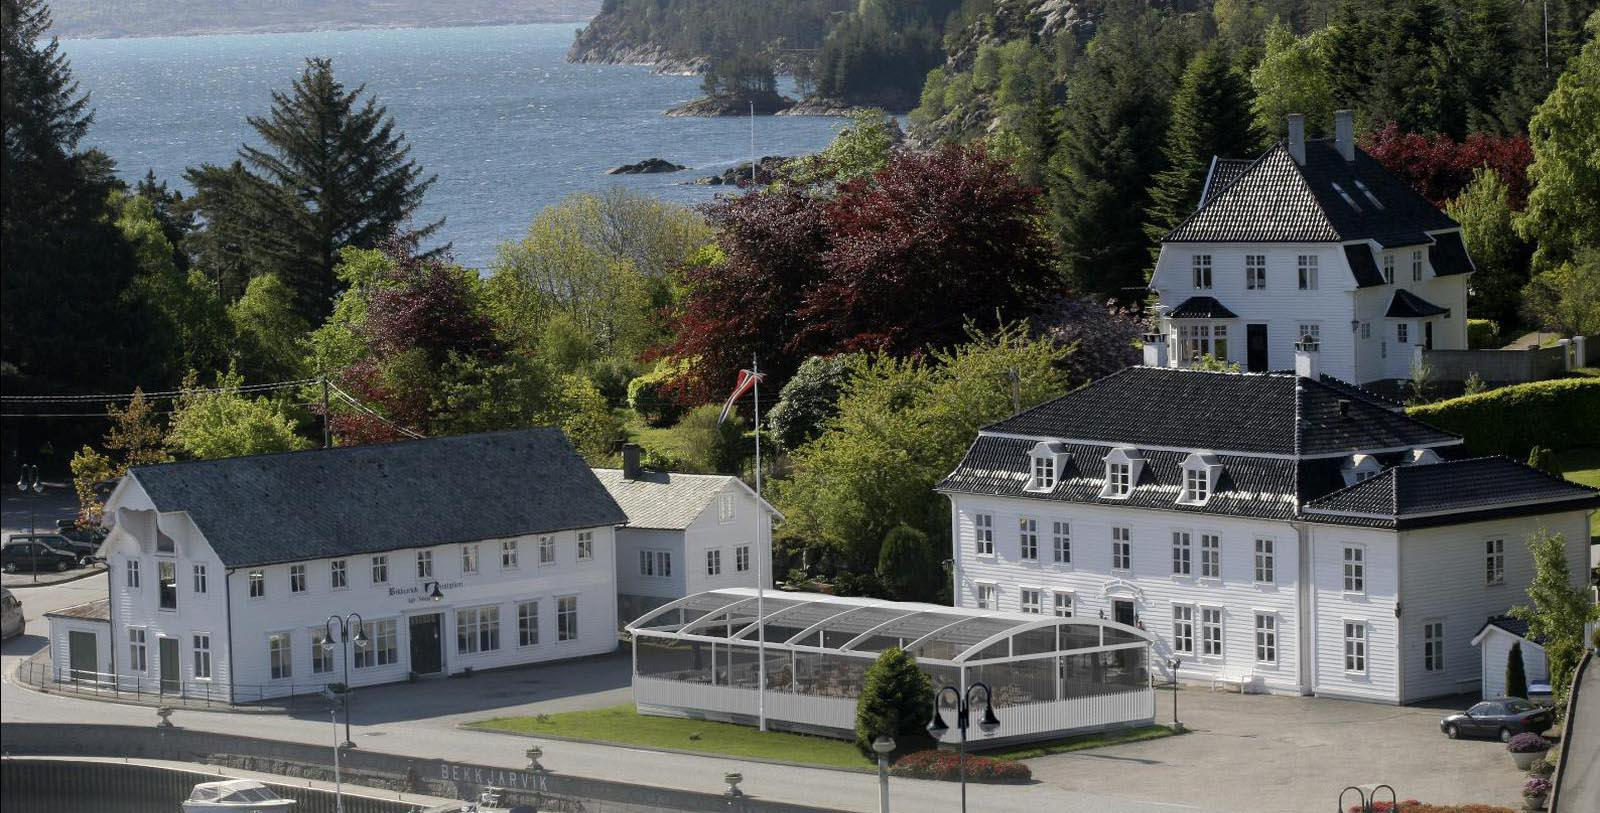 Image of hotel exterior Bekkjarvik Gjestgiveri, 1700s, Member of Historic Hotels Worldwide, in Norway, Discover